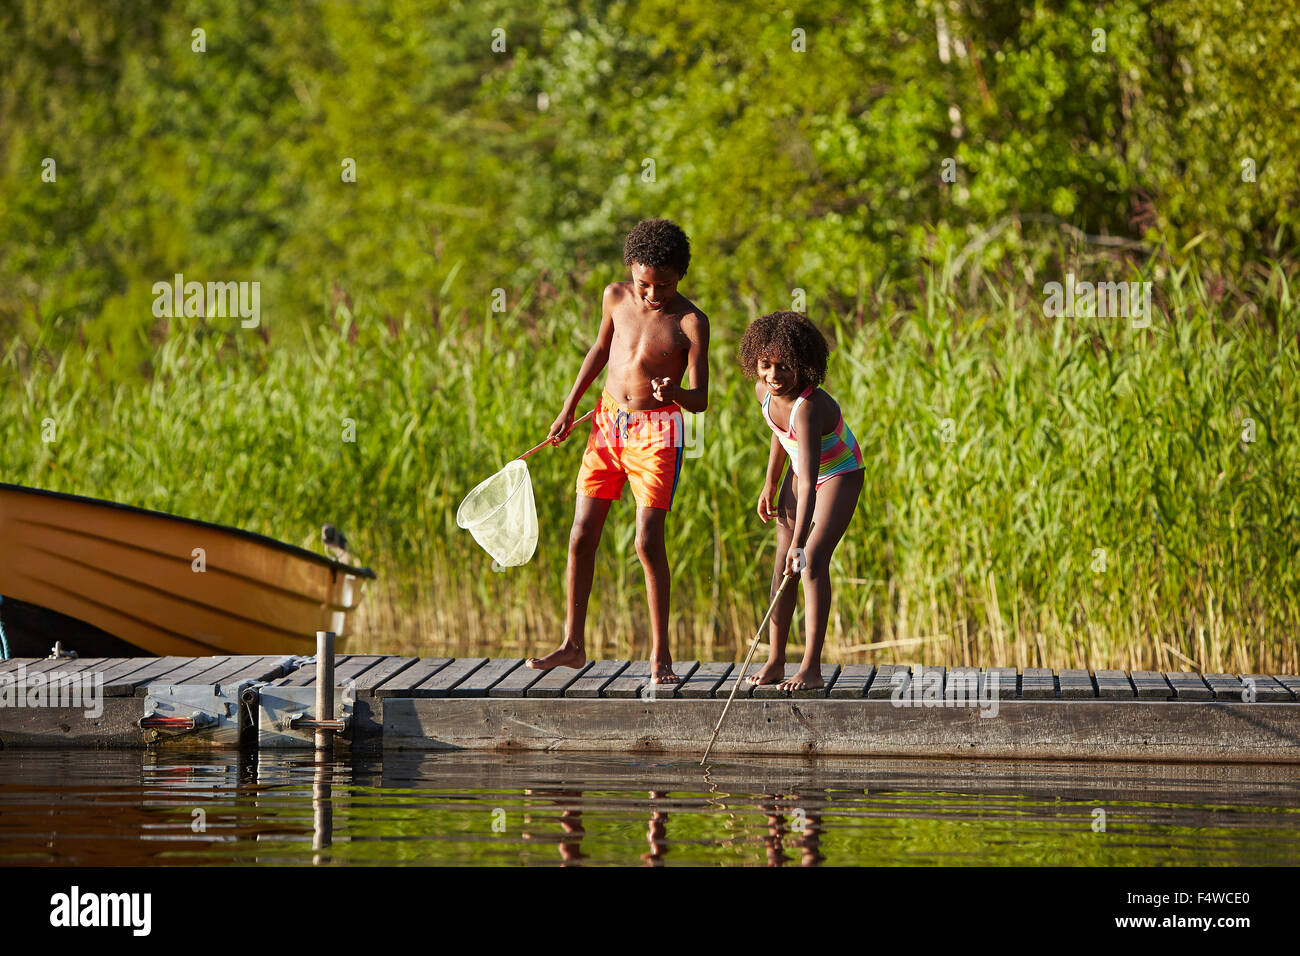 Sweden, Vastra Gotaland, Skagern, Girl (6-7) and boy (10-11) fishing in lake - Stock Image